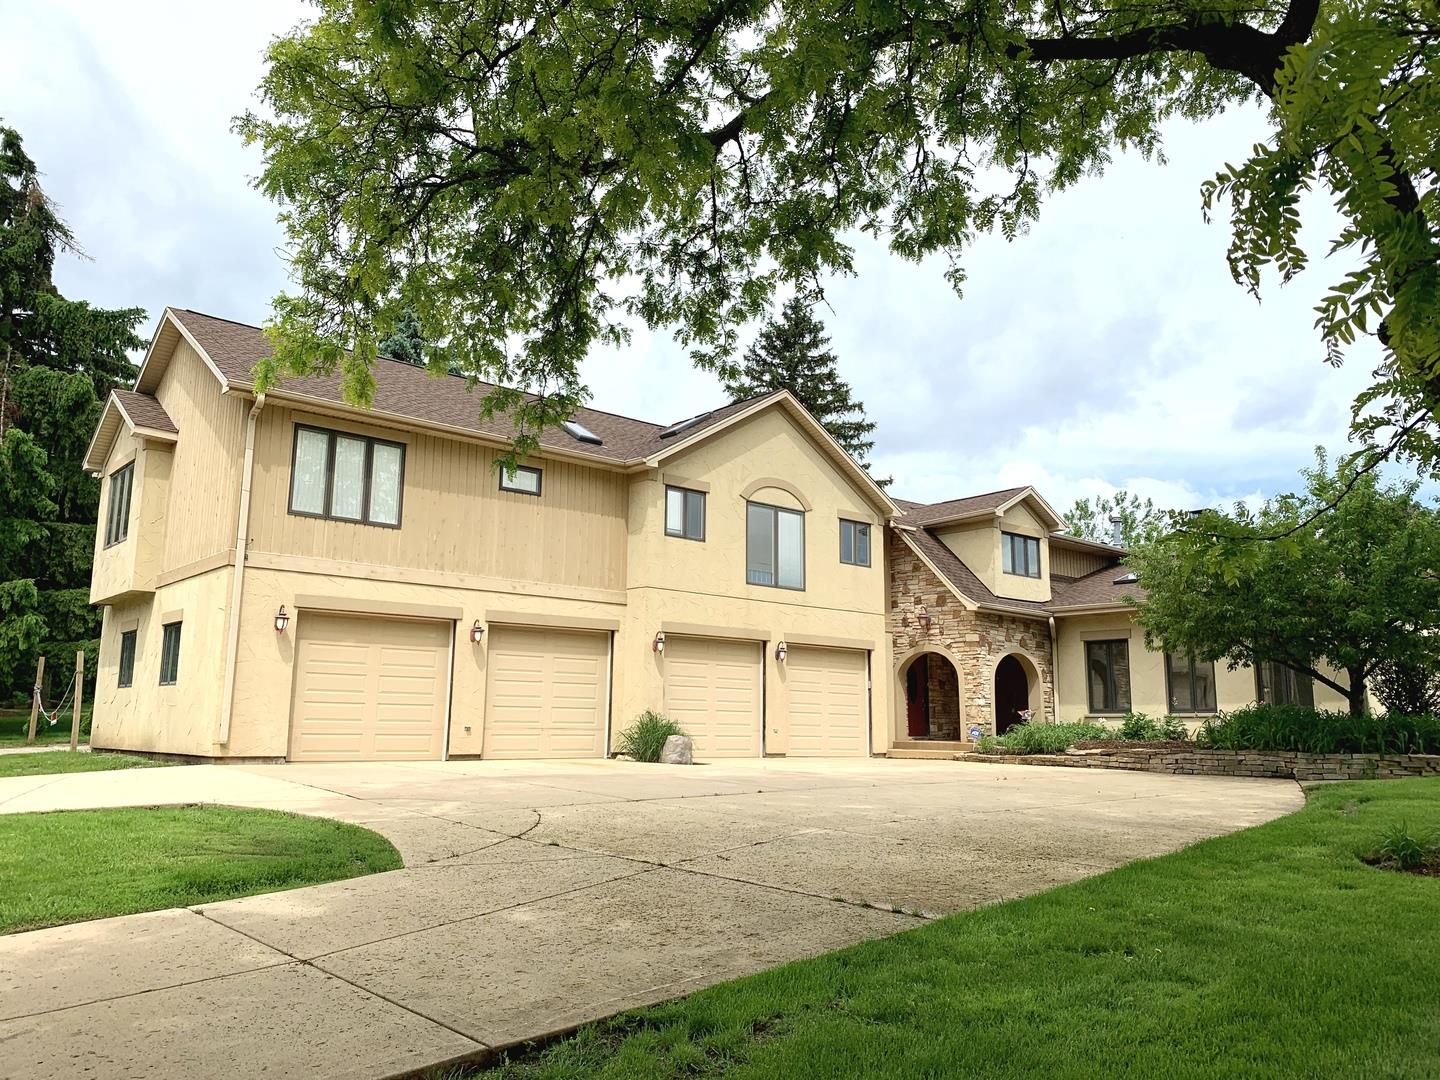 30W070 SMITH Road, West Chicago, IL 60185 - #: 10640644